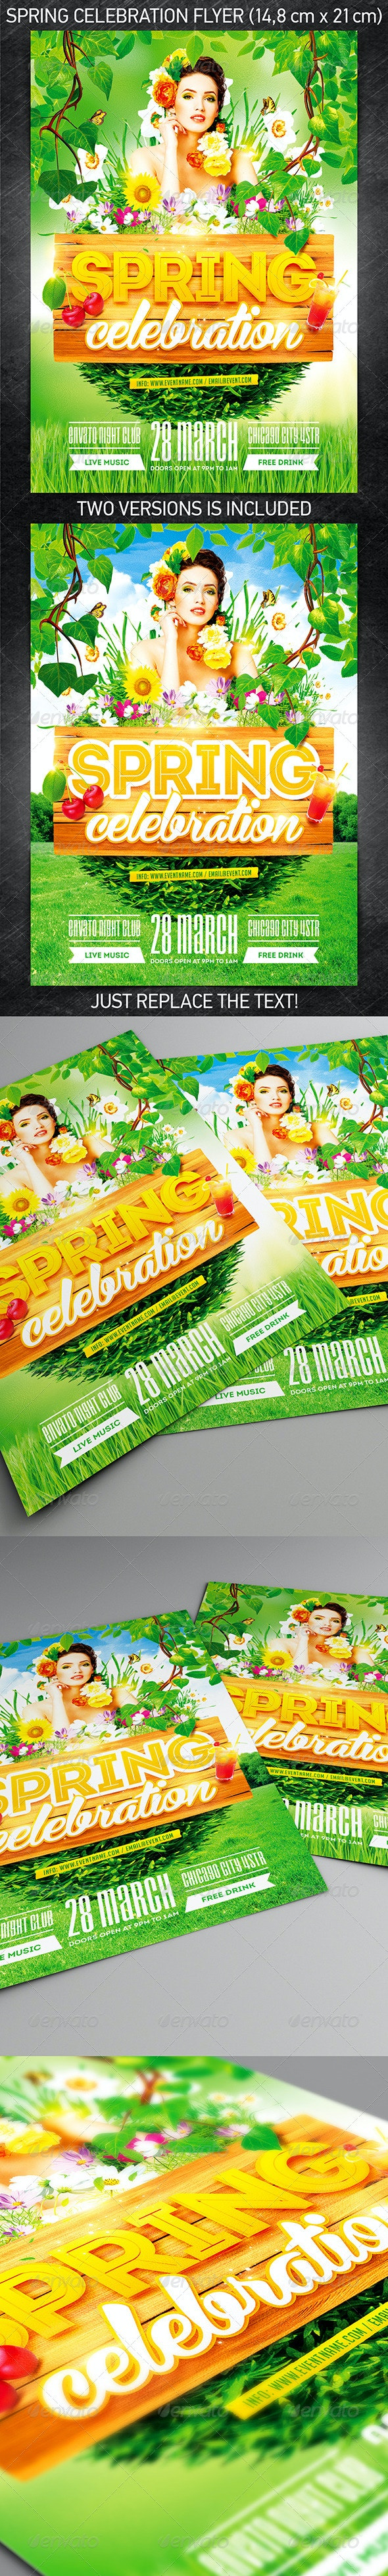 Spring Celebration Party Flyer - Holidays Events